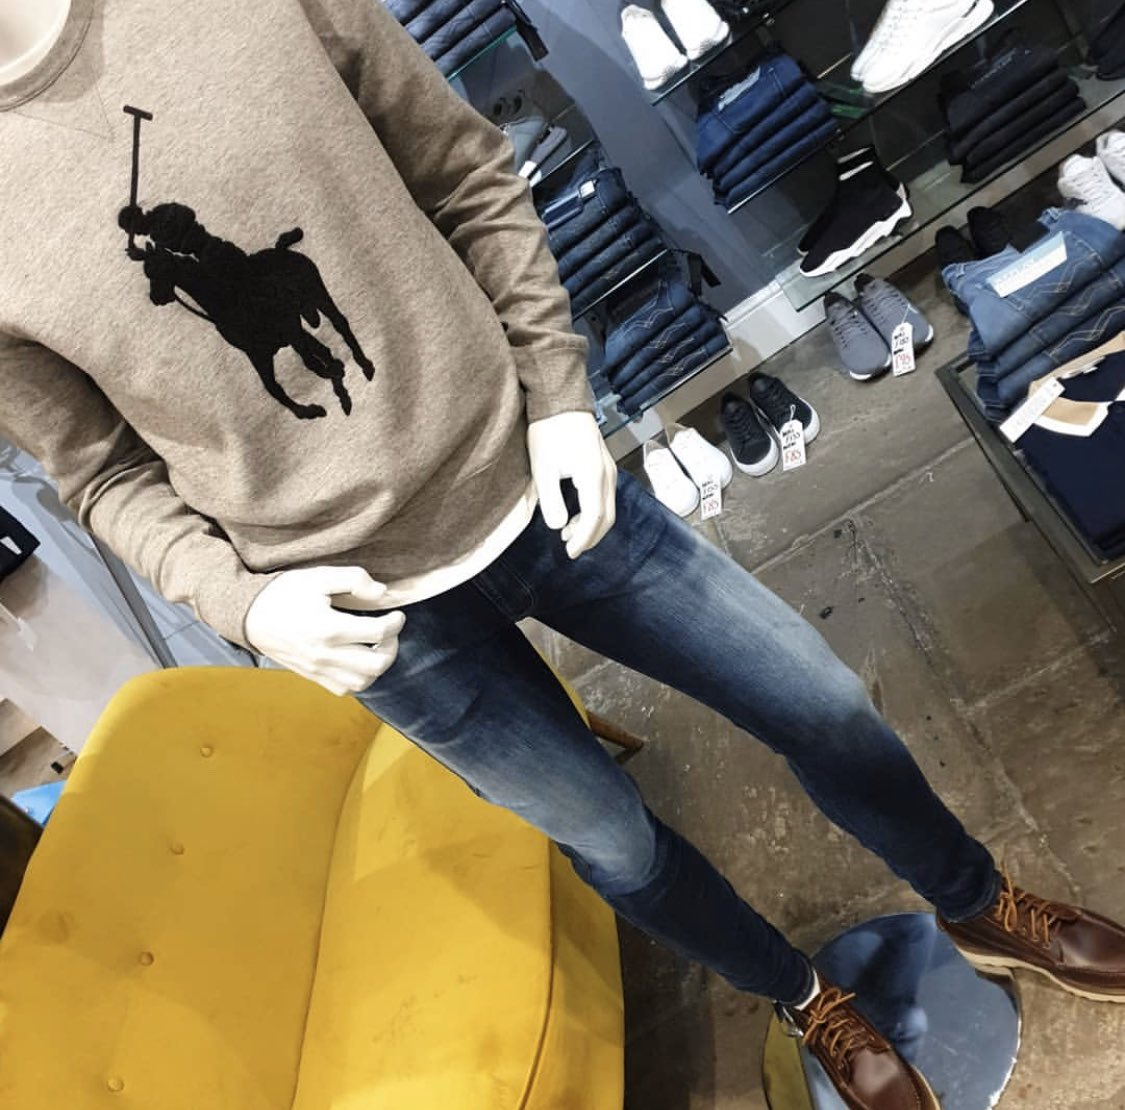 Another great colourway from Ralph in one of our bestsellers and also another new wash from the Replay Hyperflex range#dontmissout #bestseller #ralphlauren #sweatshirt #newcolour #replay #hyperflex #jeans #watfordpic.twitter.com/zCpU40qJPL